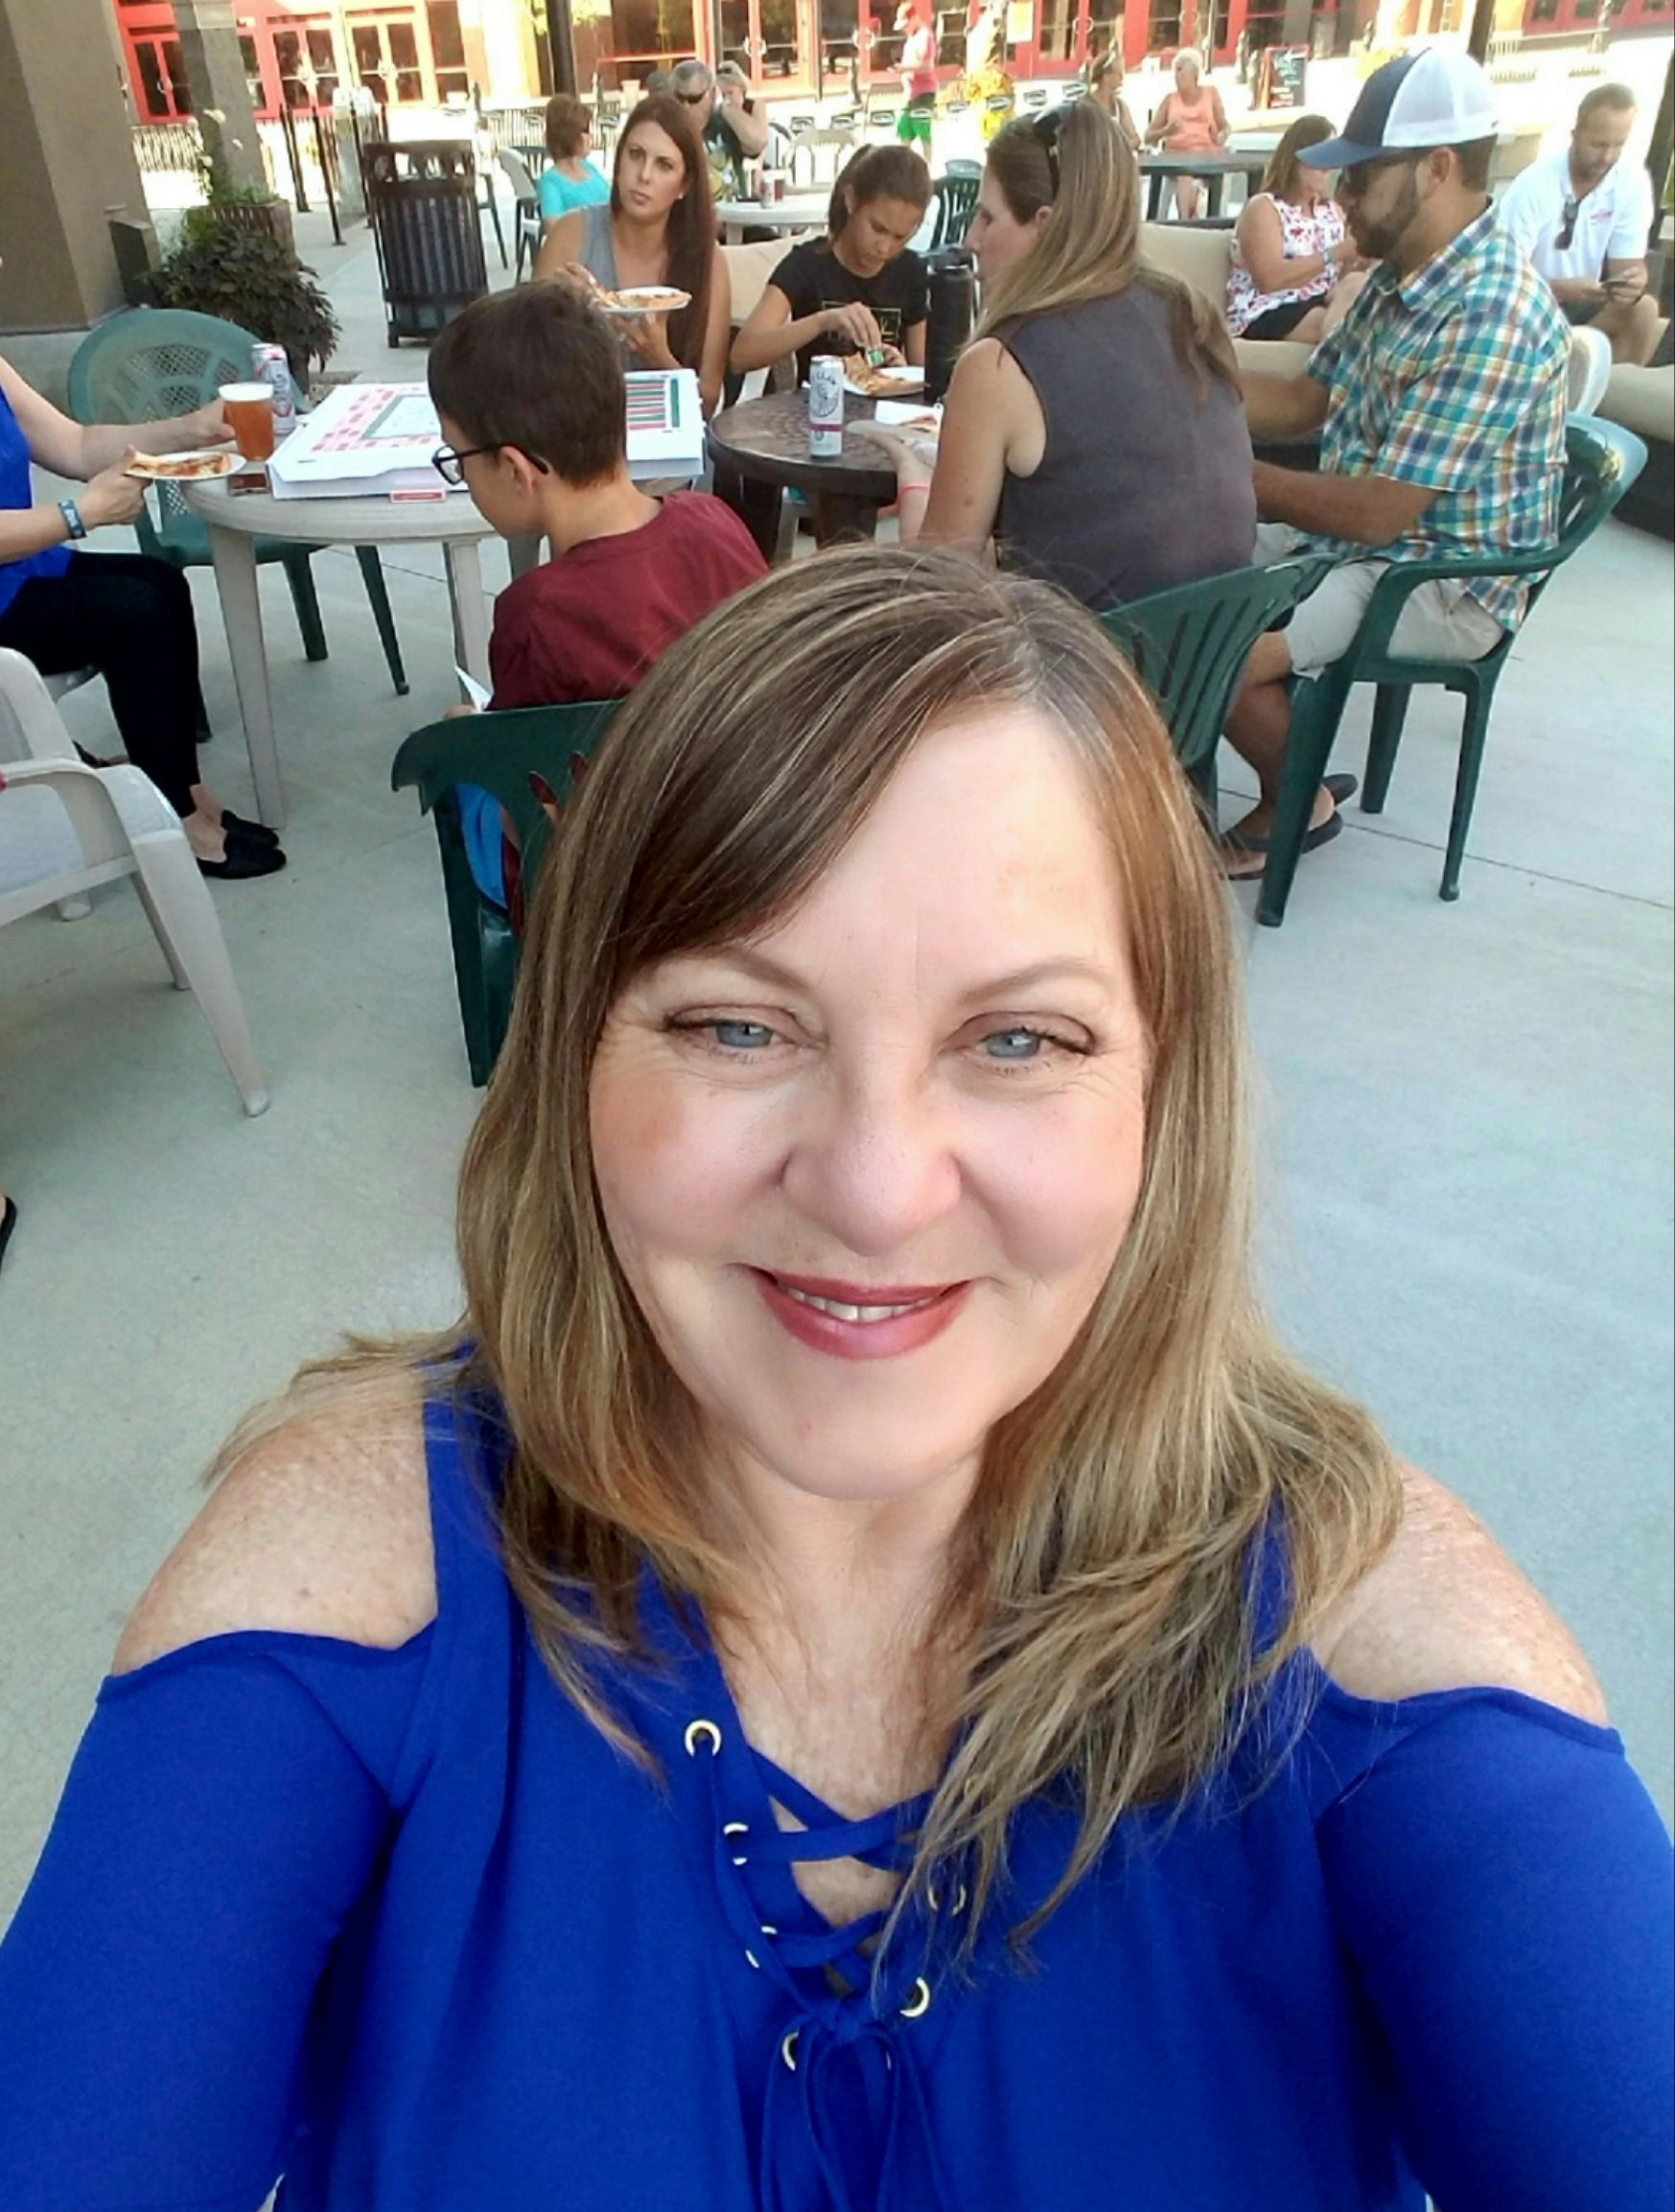 singles over 50 in mantoloking Singles sites for over 50  make sure to inform a relative or friend where you are going to make him pay a party closely monitor you in fact, the point is that these days dating has become much easier, interesting and entertaining.